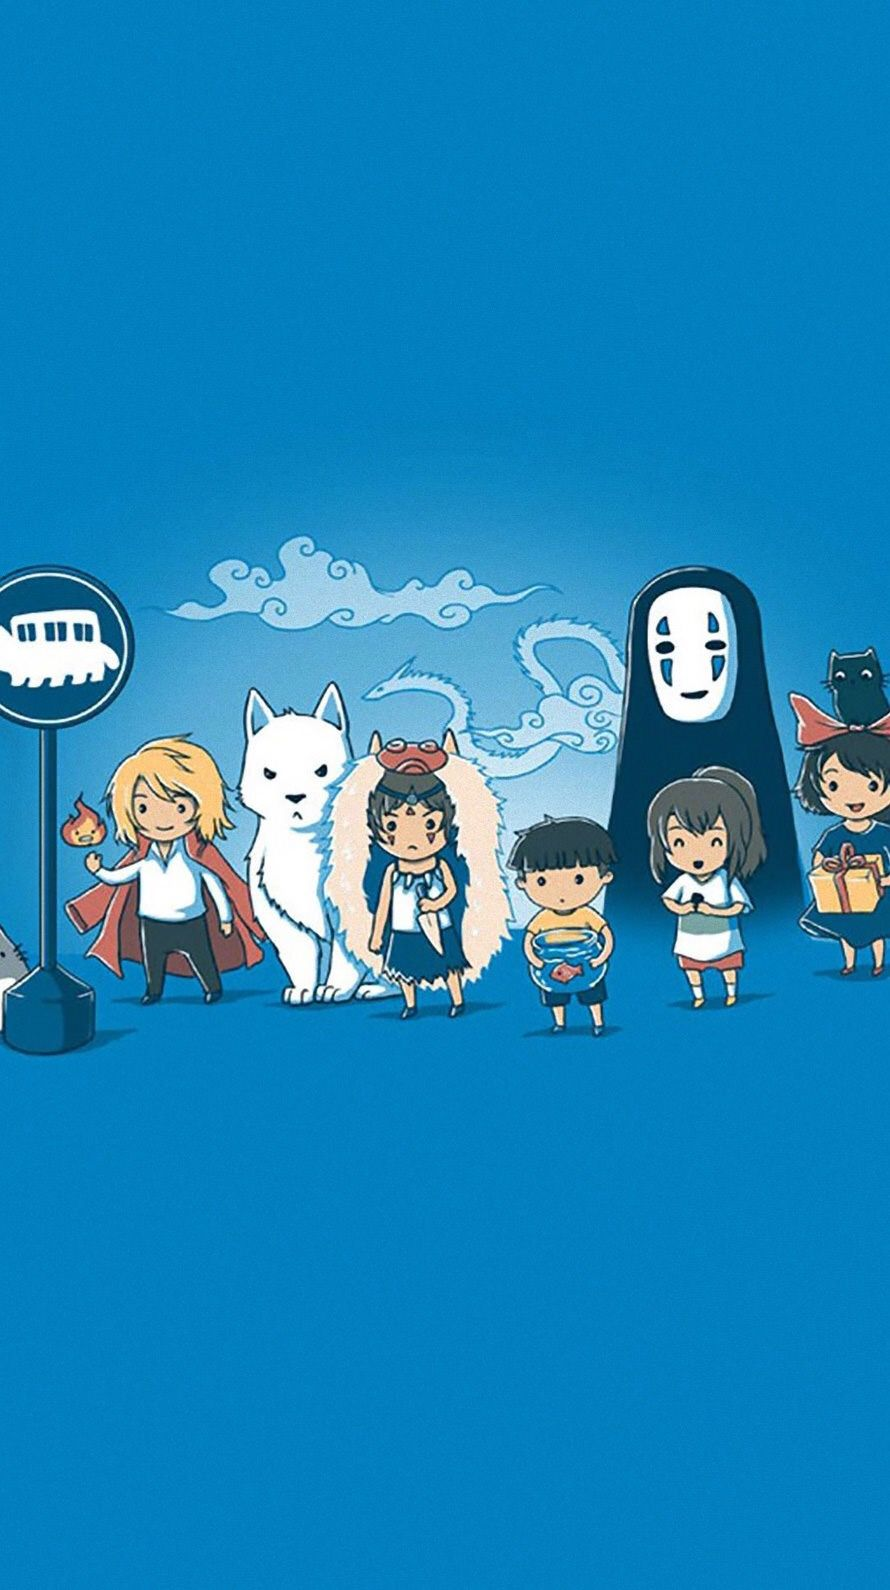 Pin by Chanel Aprahamian on Studio Ghibli and anime movies